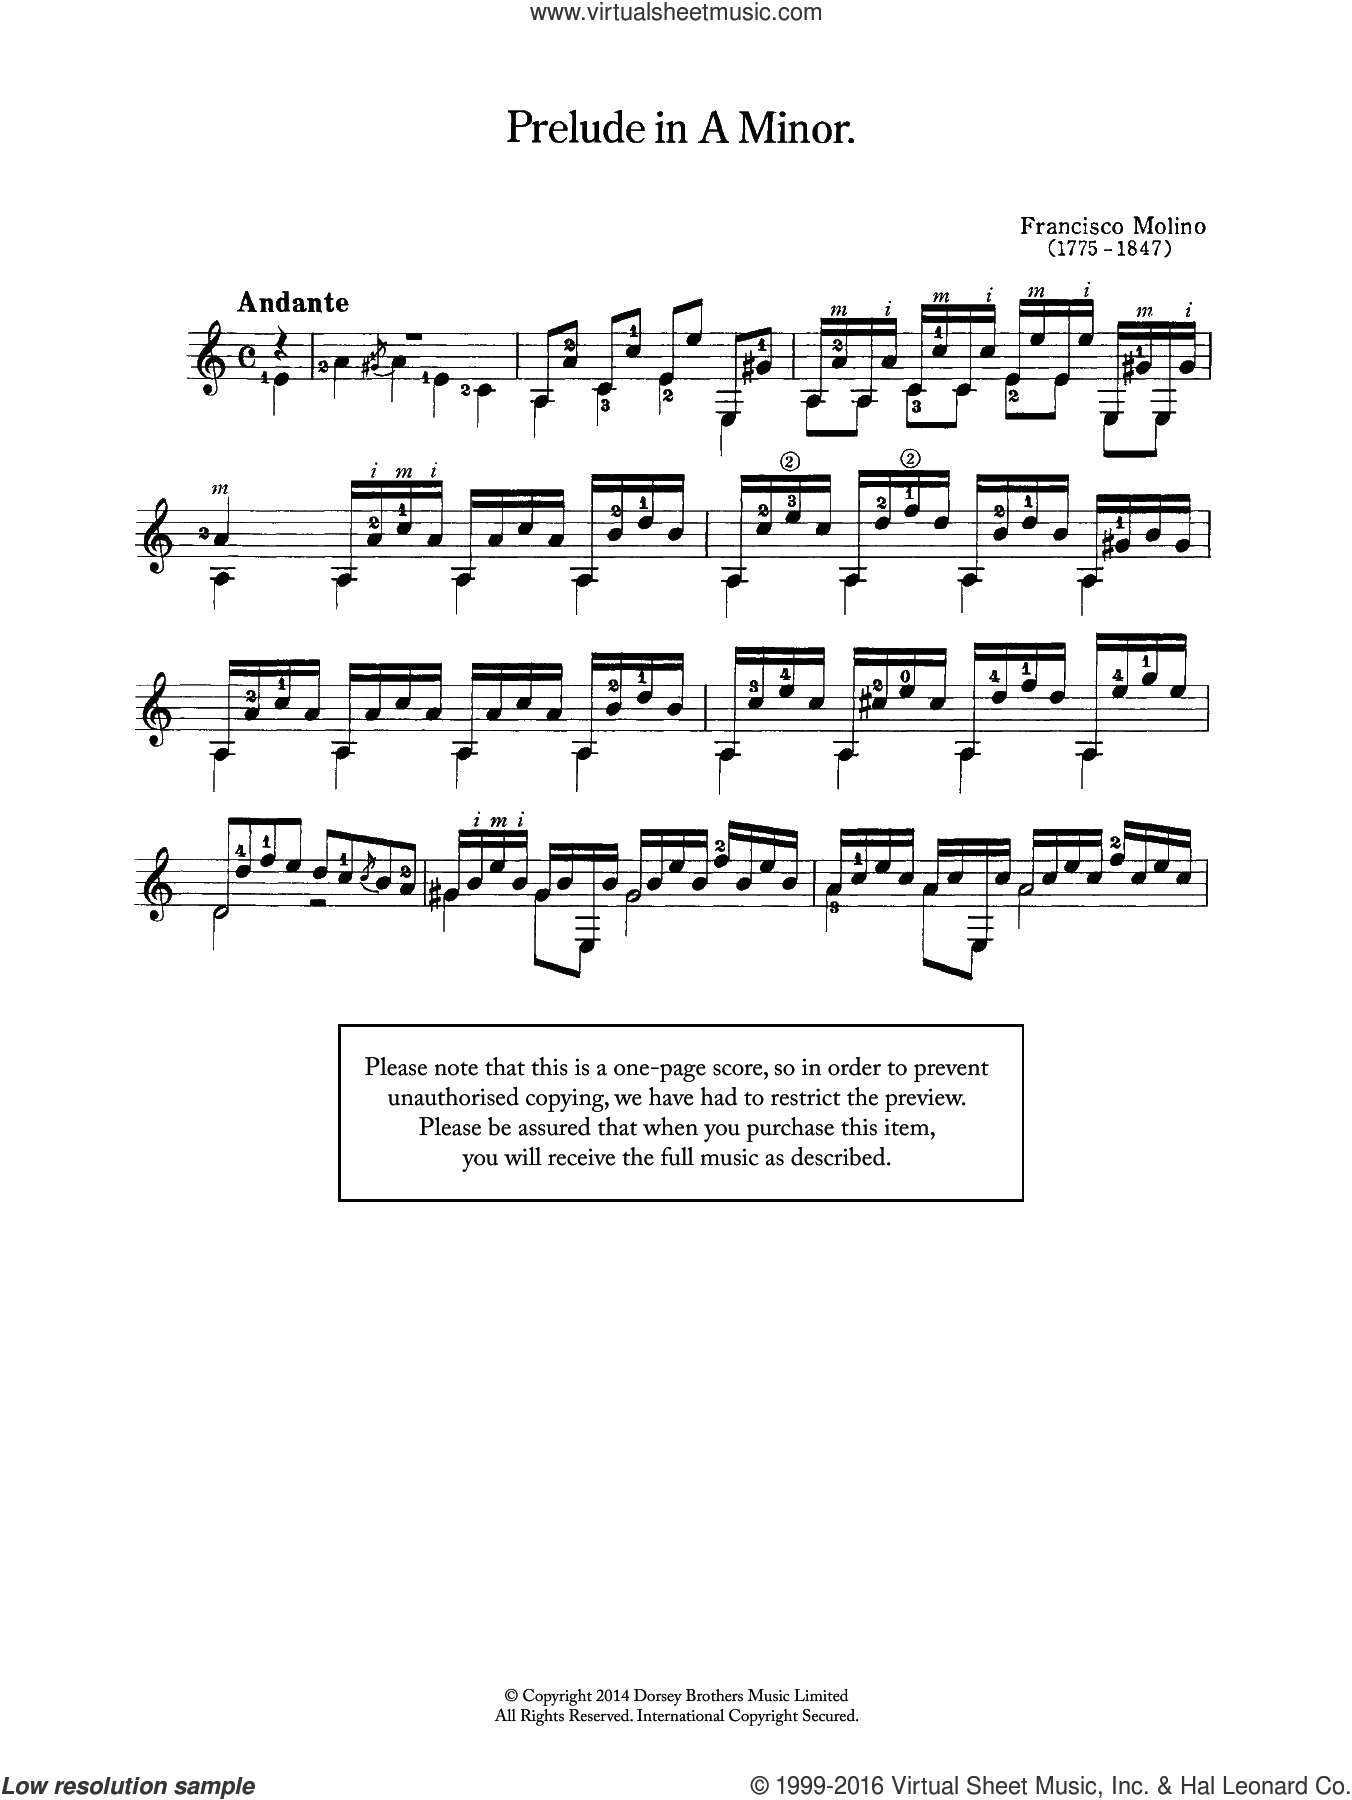 Prelude In A Minor sheet music for guitar solo (chords) by Francesco Molino, classical score, easy guitar (chords)